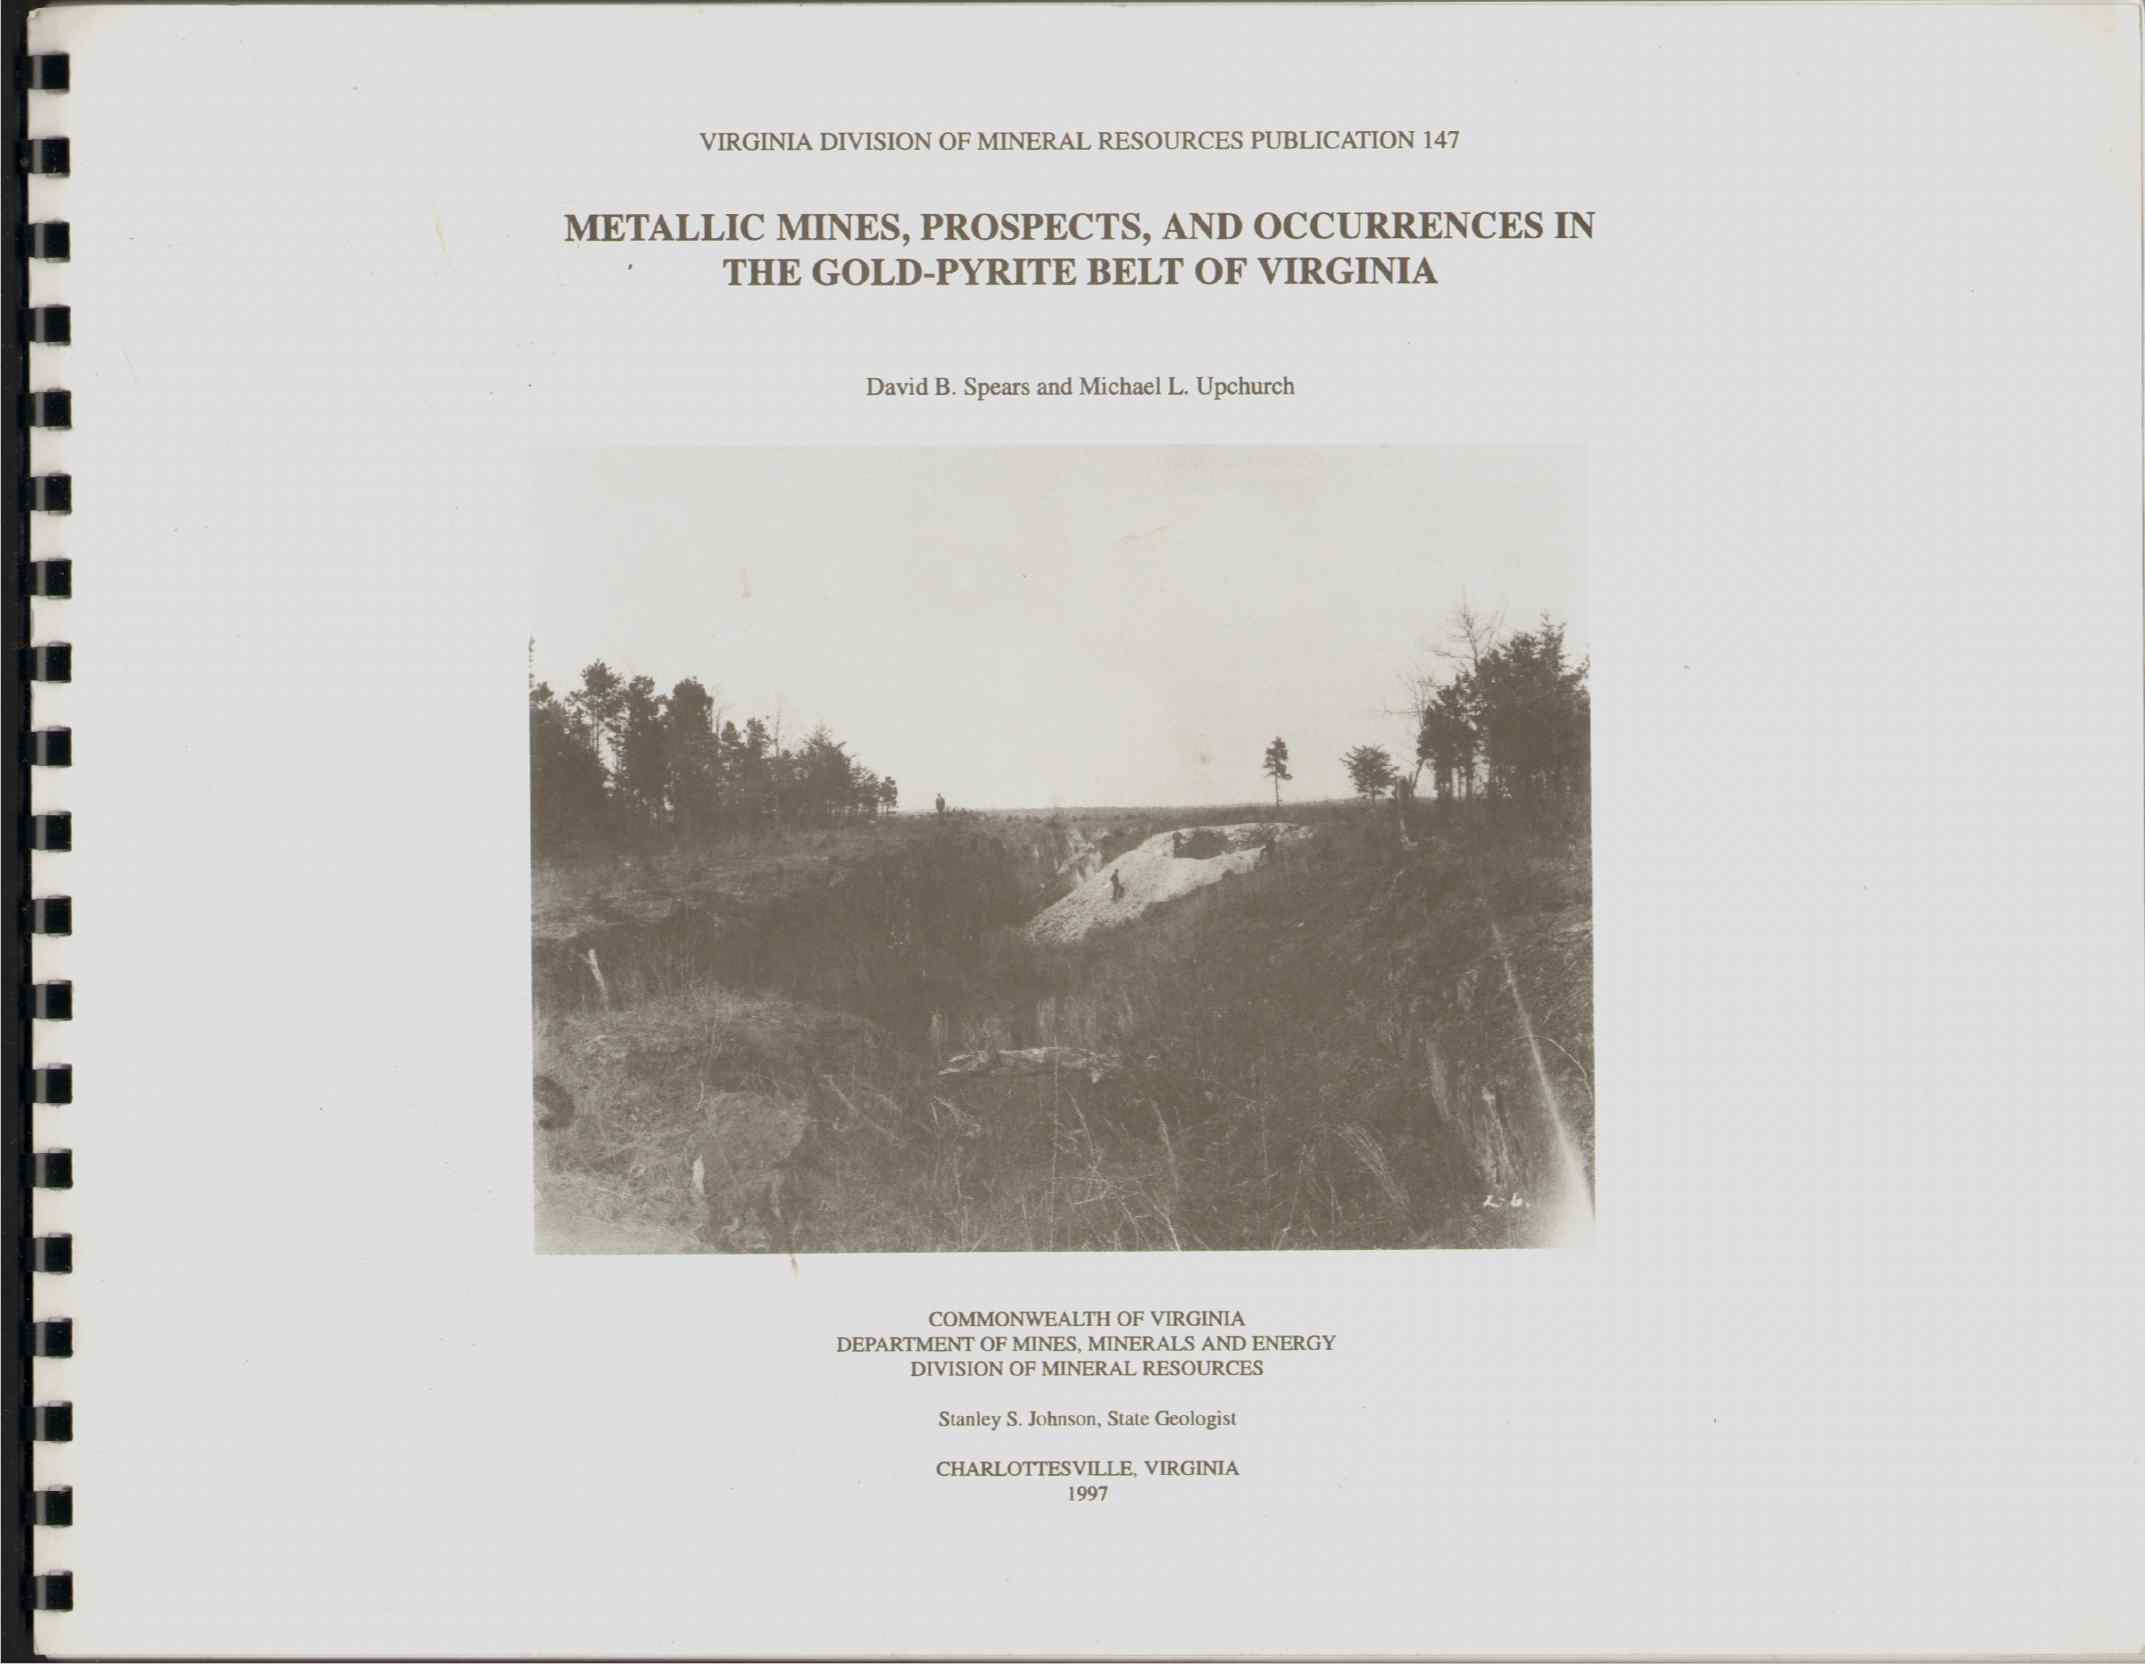 Image for METALLIC MINES, PROSPECTS, AND OCCURENCES IN THE GOLD-PYRITE BELT OF VIRGINIA Virginia Division of Mineral Resources Publication 147